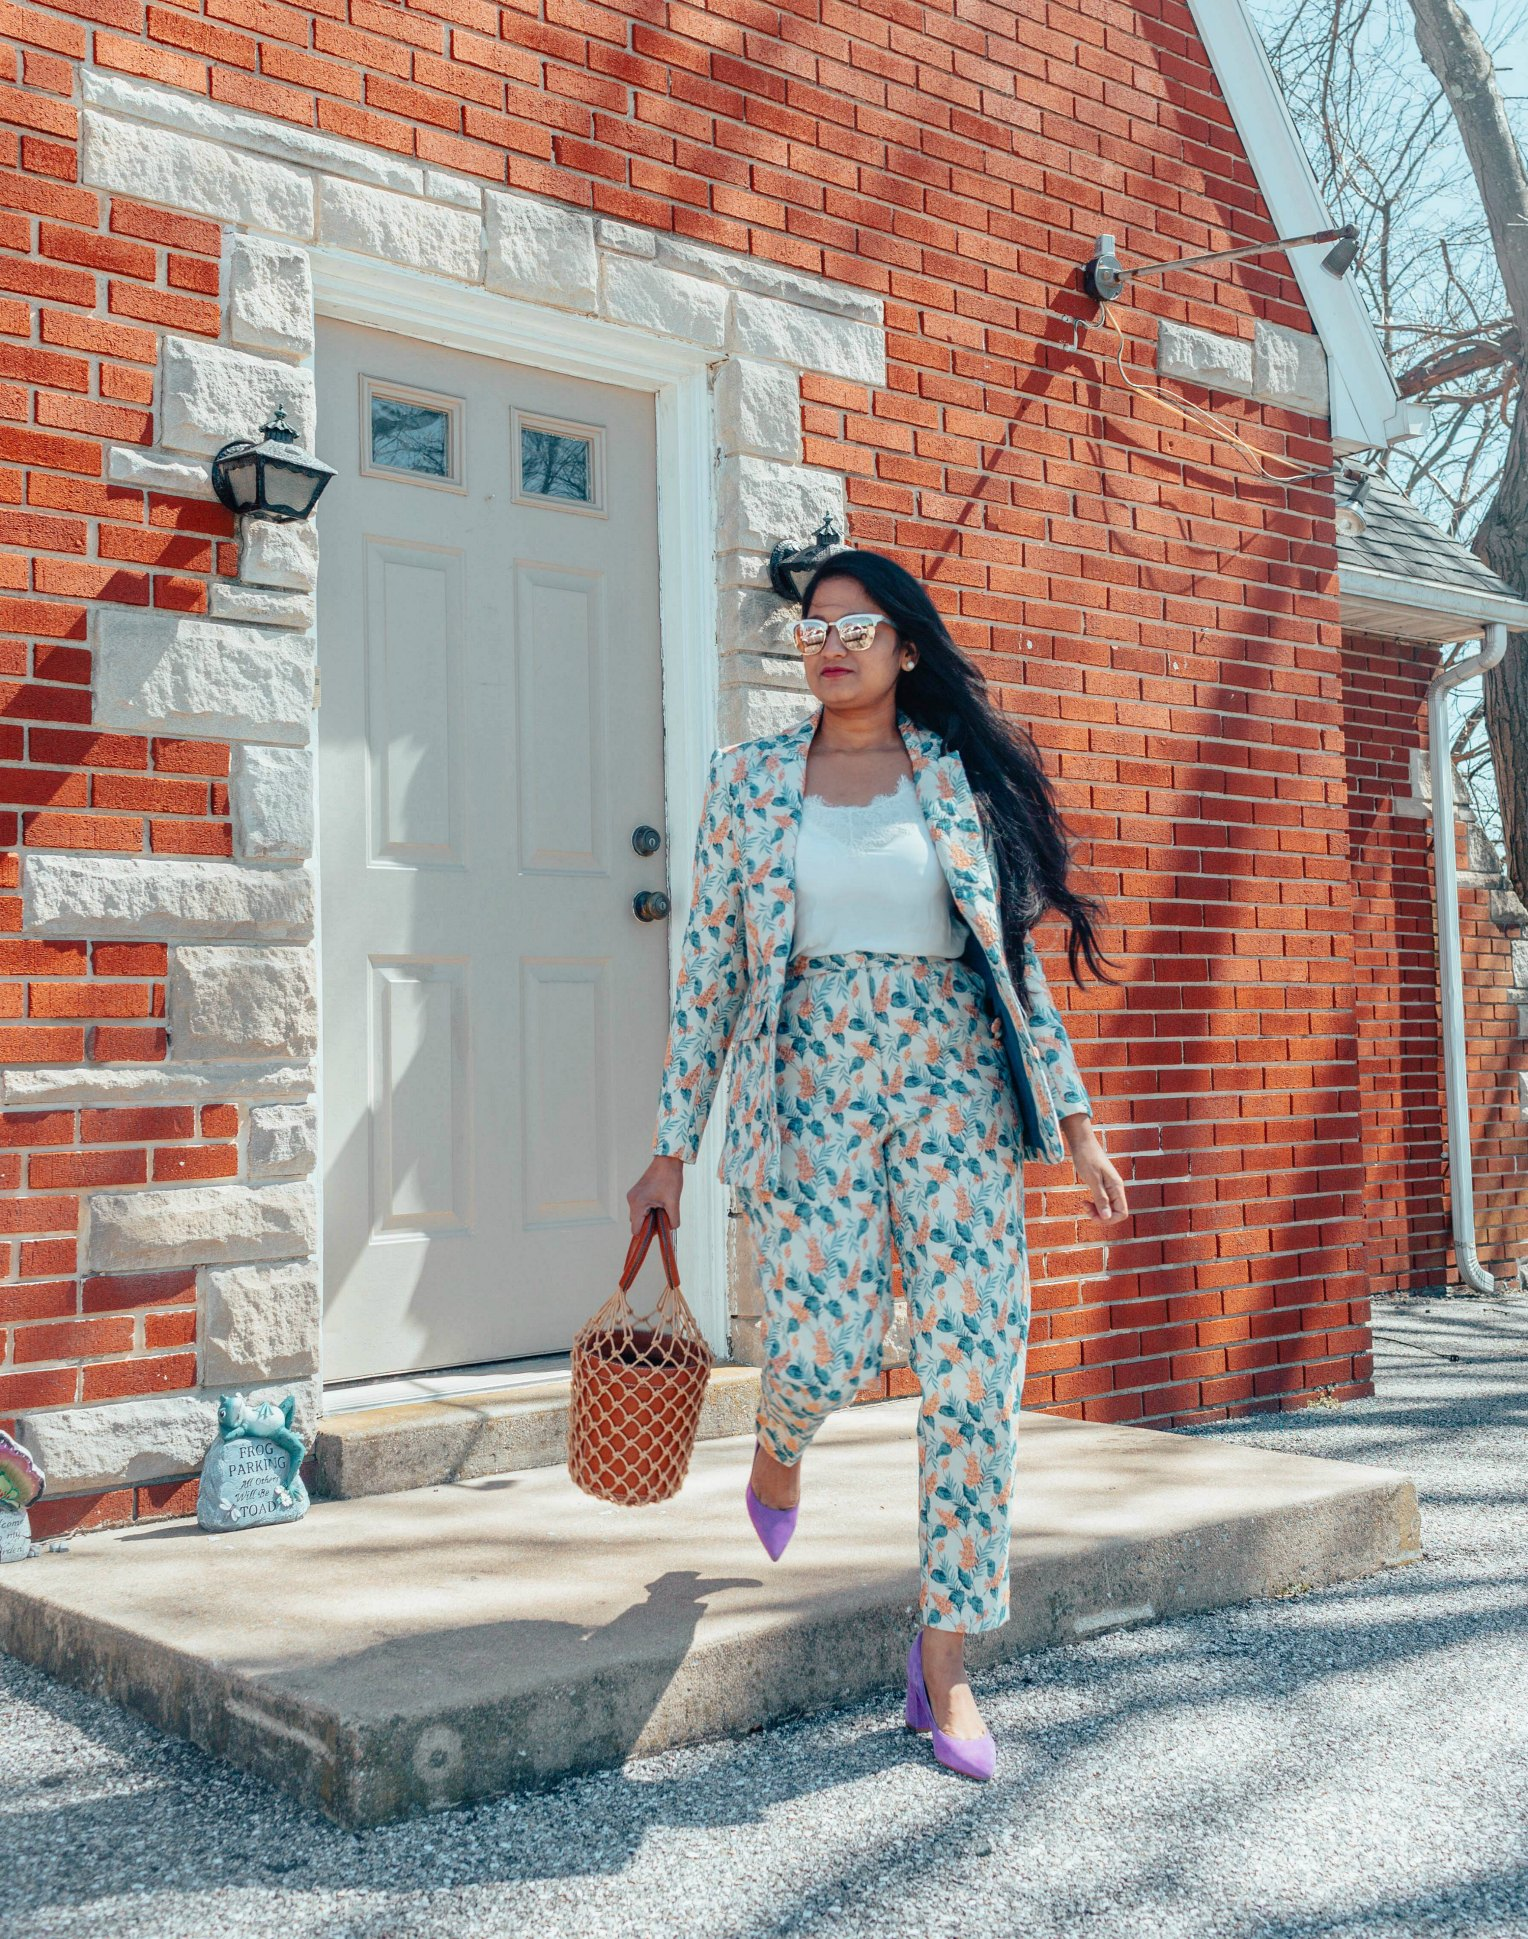 Wearing STAUD Moreau Bag | Modest Spring outfits featured by top US fashion blog, Dreaming Loud: image of a woman wearing an ASOS floral pant suit, Abercrombie and Fitch lace cami, STAUD bag, Marc Fisher pumps and Ray ban aviator sunglasses